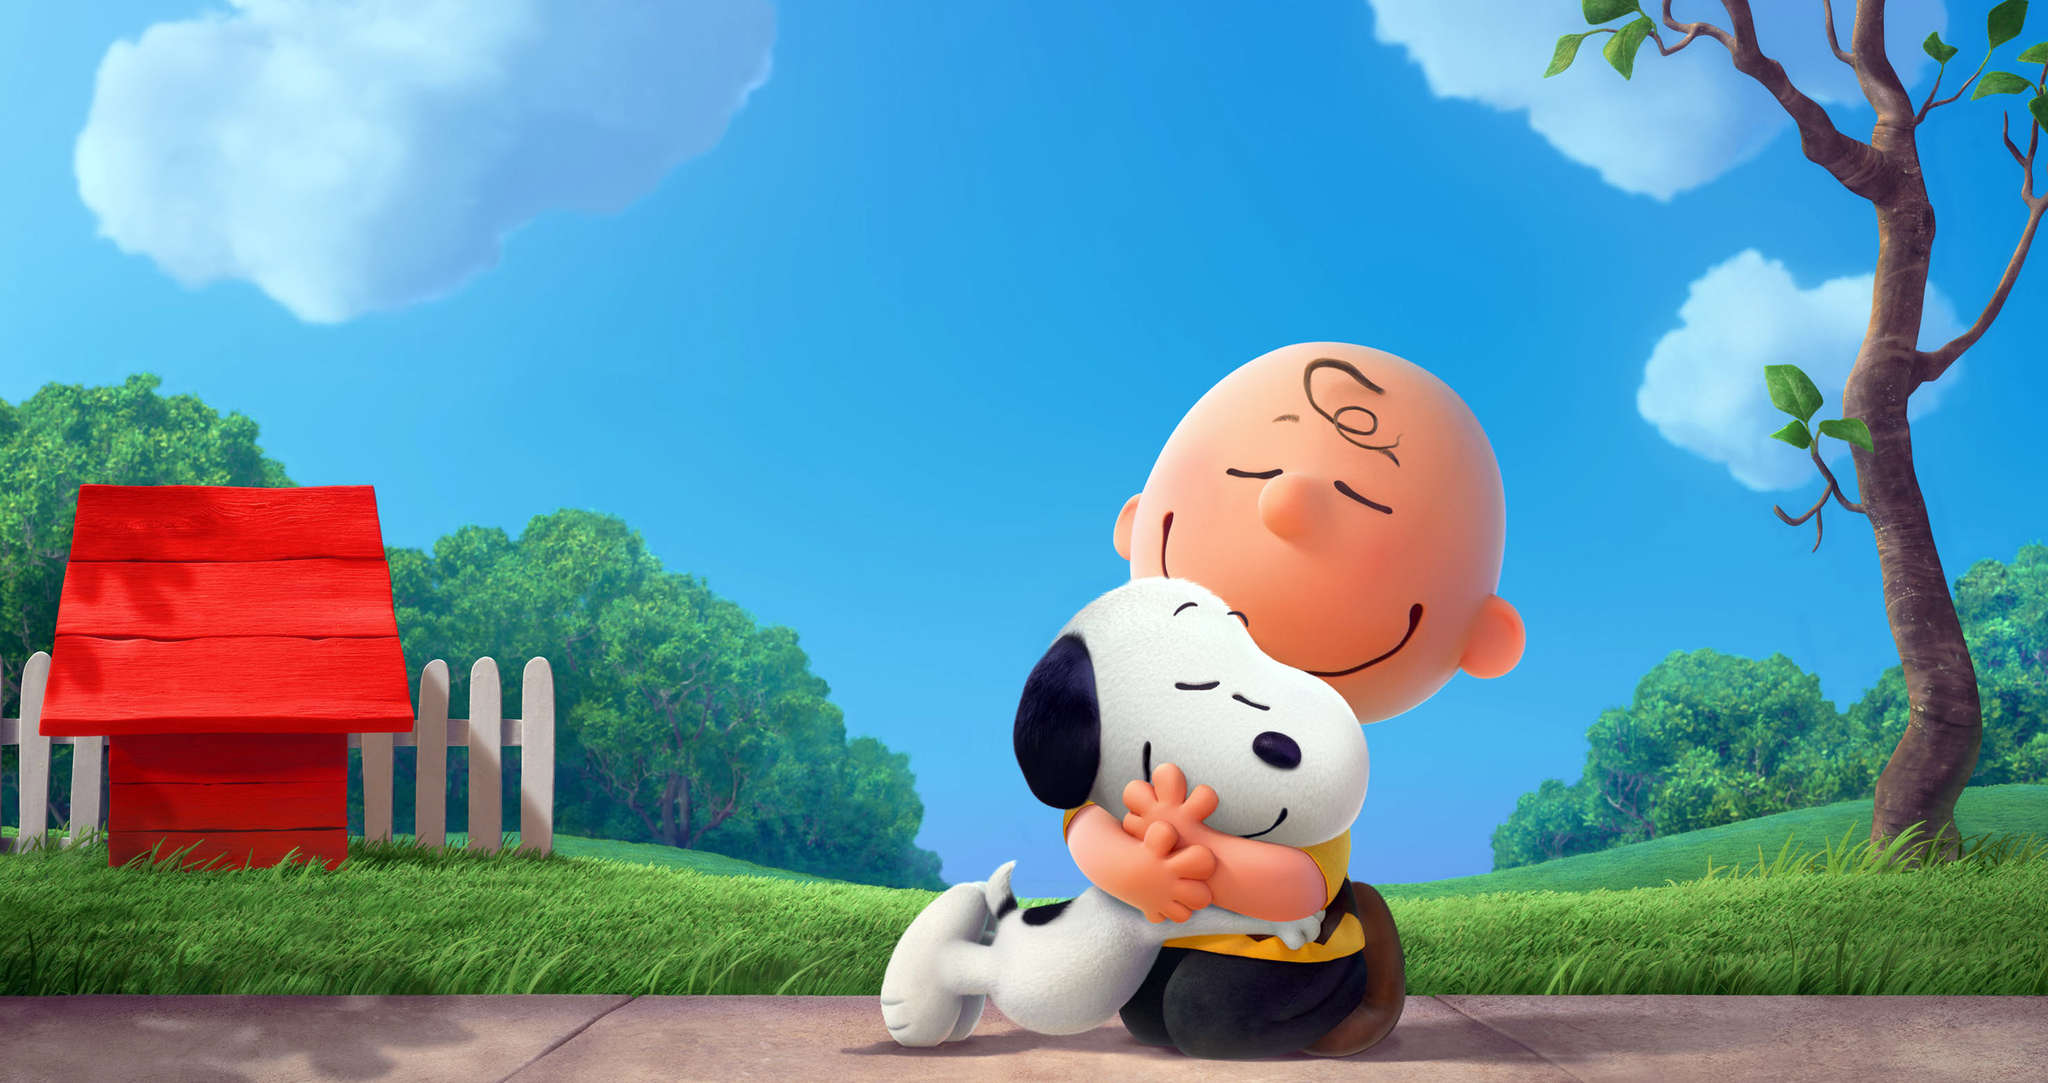 Happiness is a warm ... well, you know, and after all these years it still is for Charlie Brown and Snoopy.